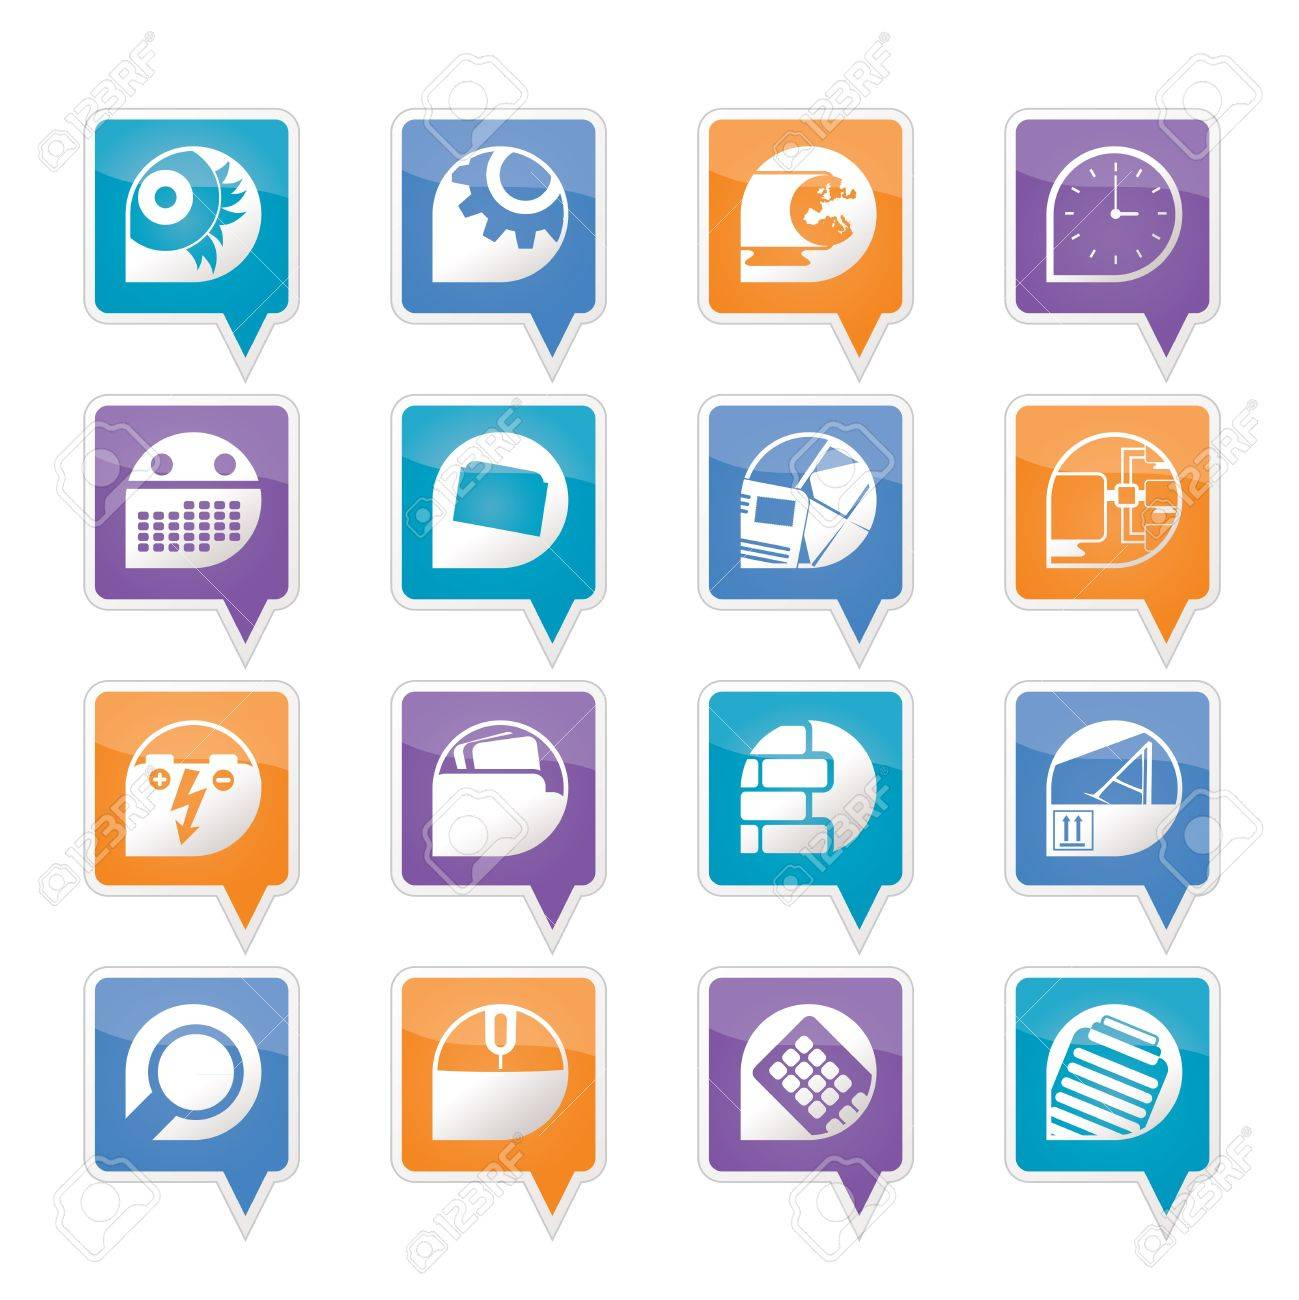 Computer, mobile phone and Internet icons -  Vector Icon Set Stock Vector - 11780311